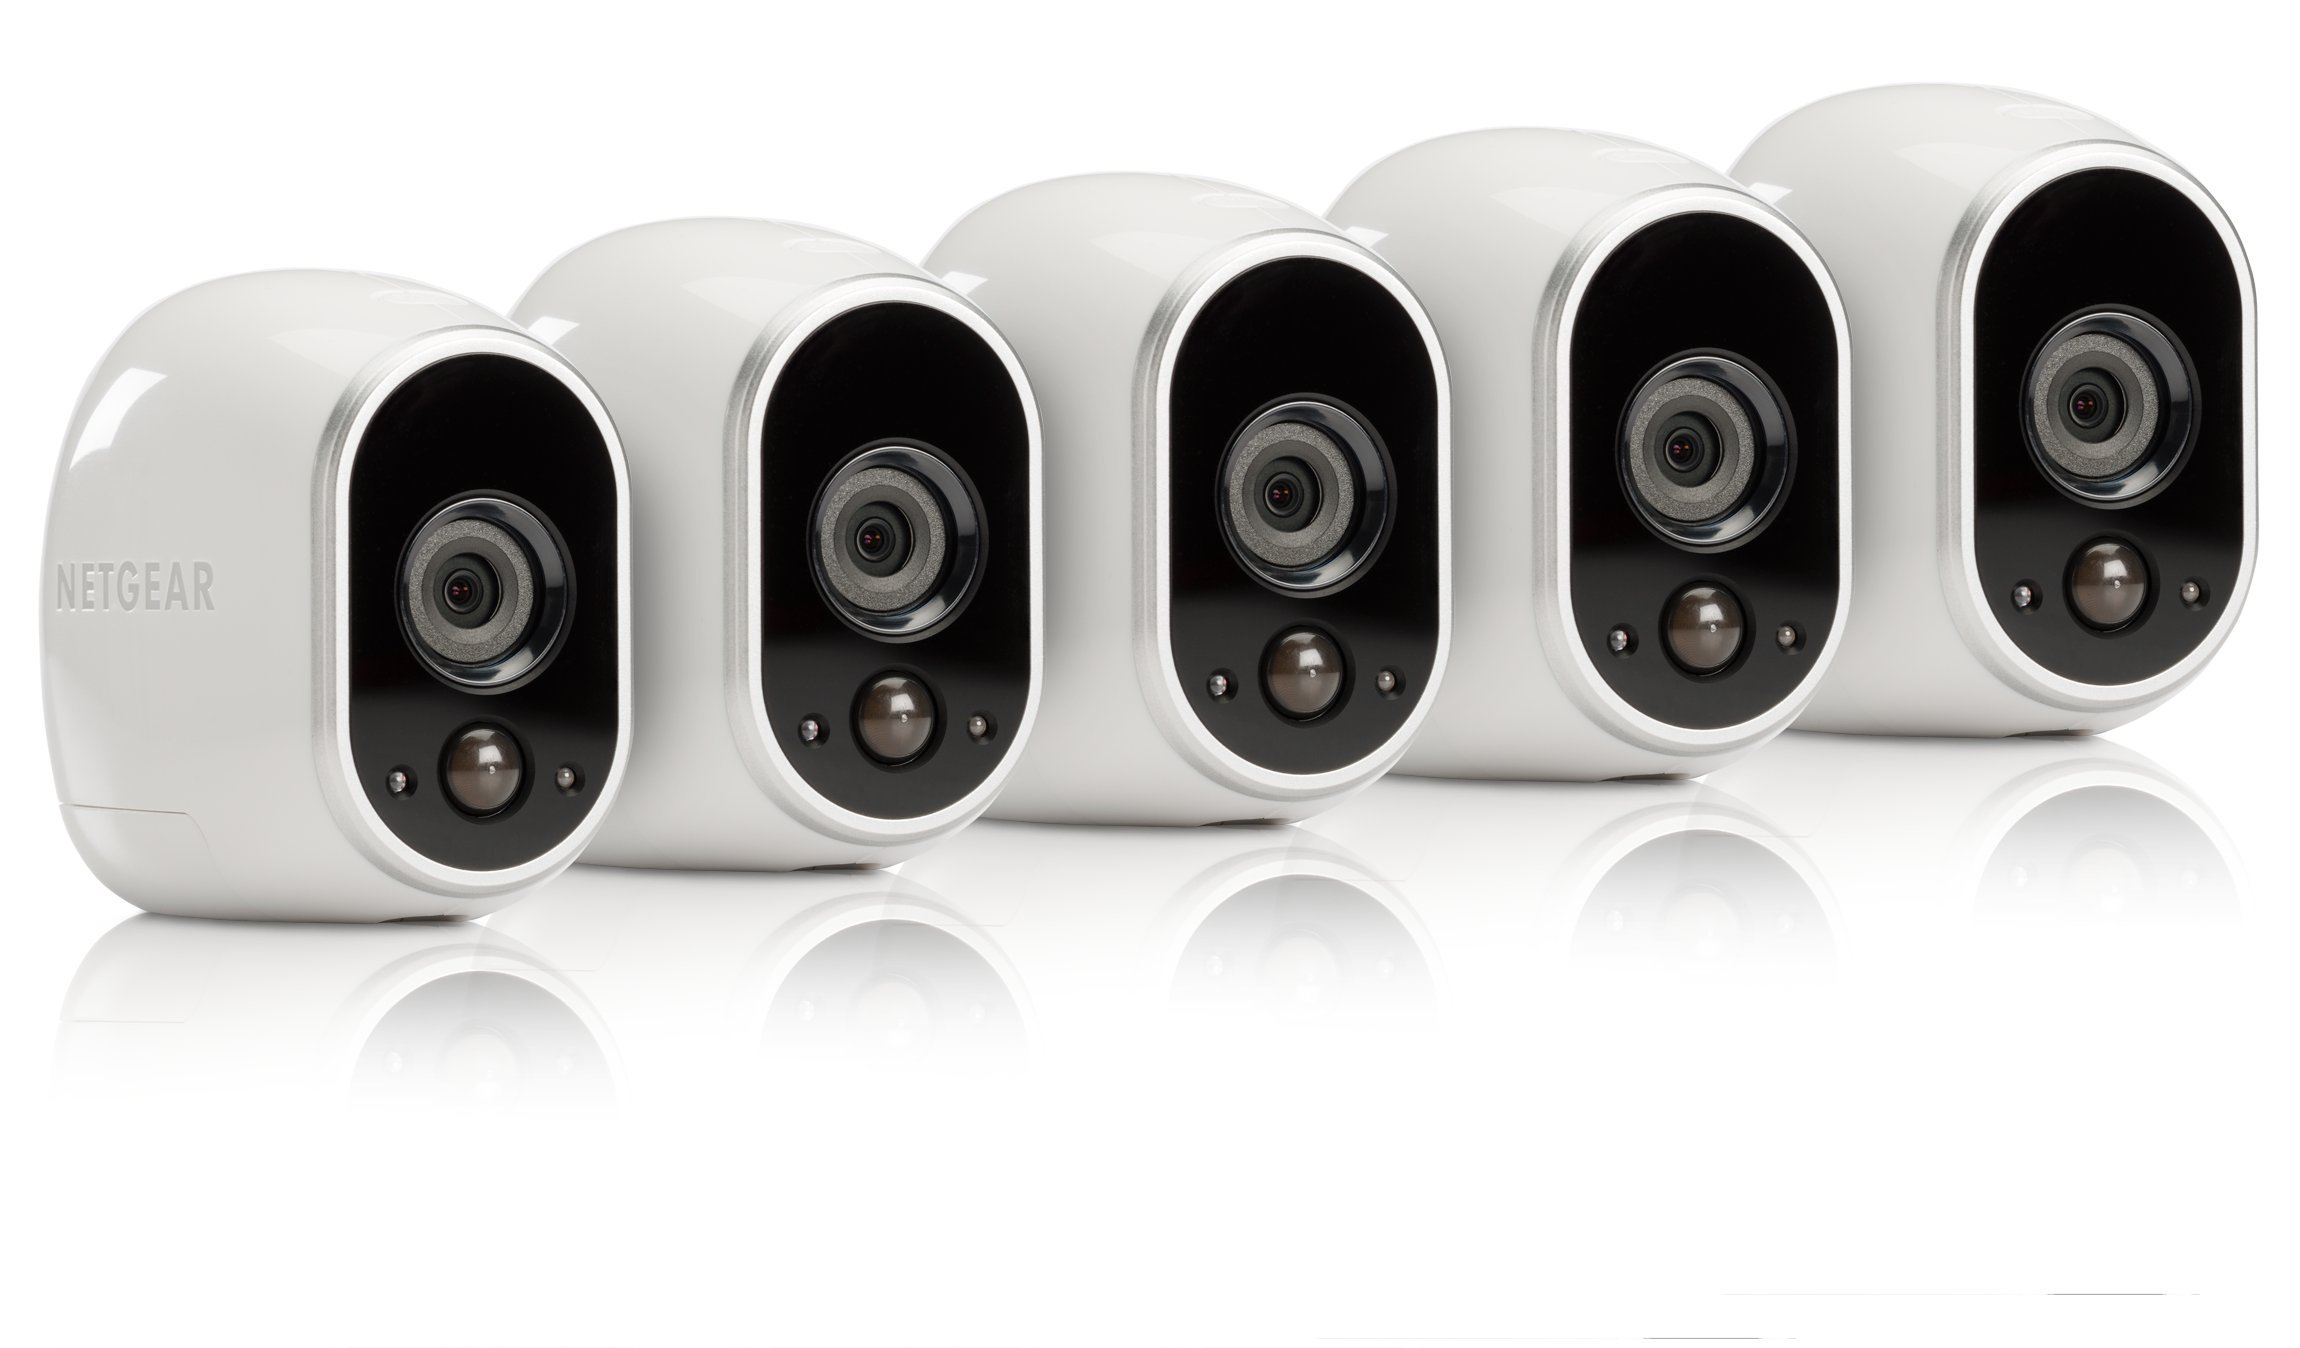 Arlo - Wireless Home Security Camera System | Night vision, Indoor/Outdoor, HD Video, Wall Mount | Cloud Storage Included | 5 camera kit (VMS3530-100NAR) - (Renewed) by Arlo Technologies, Inc